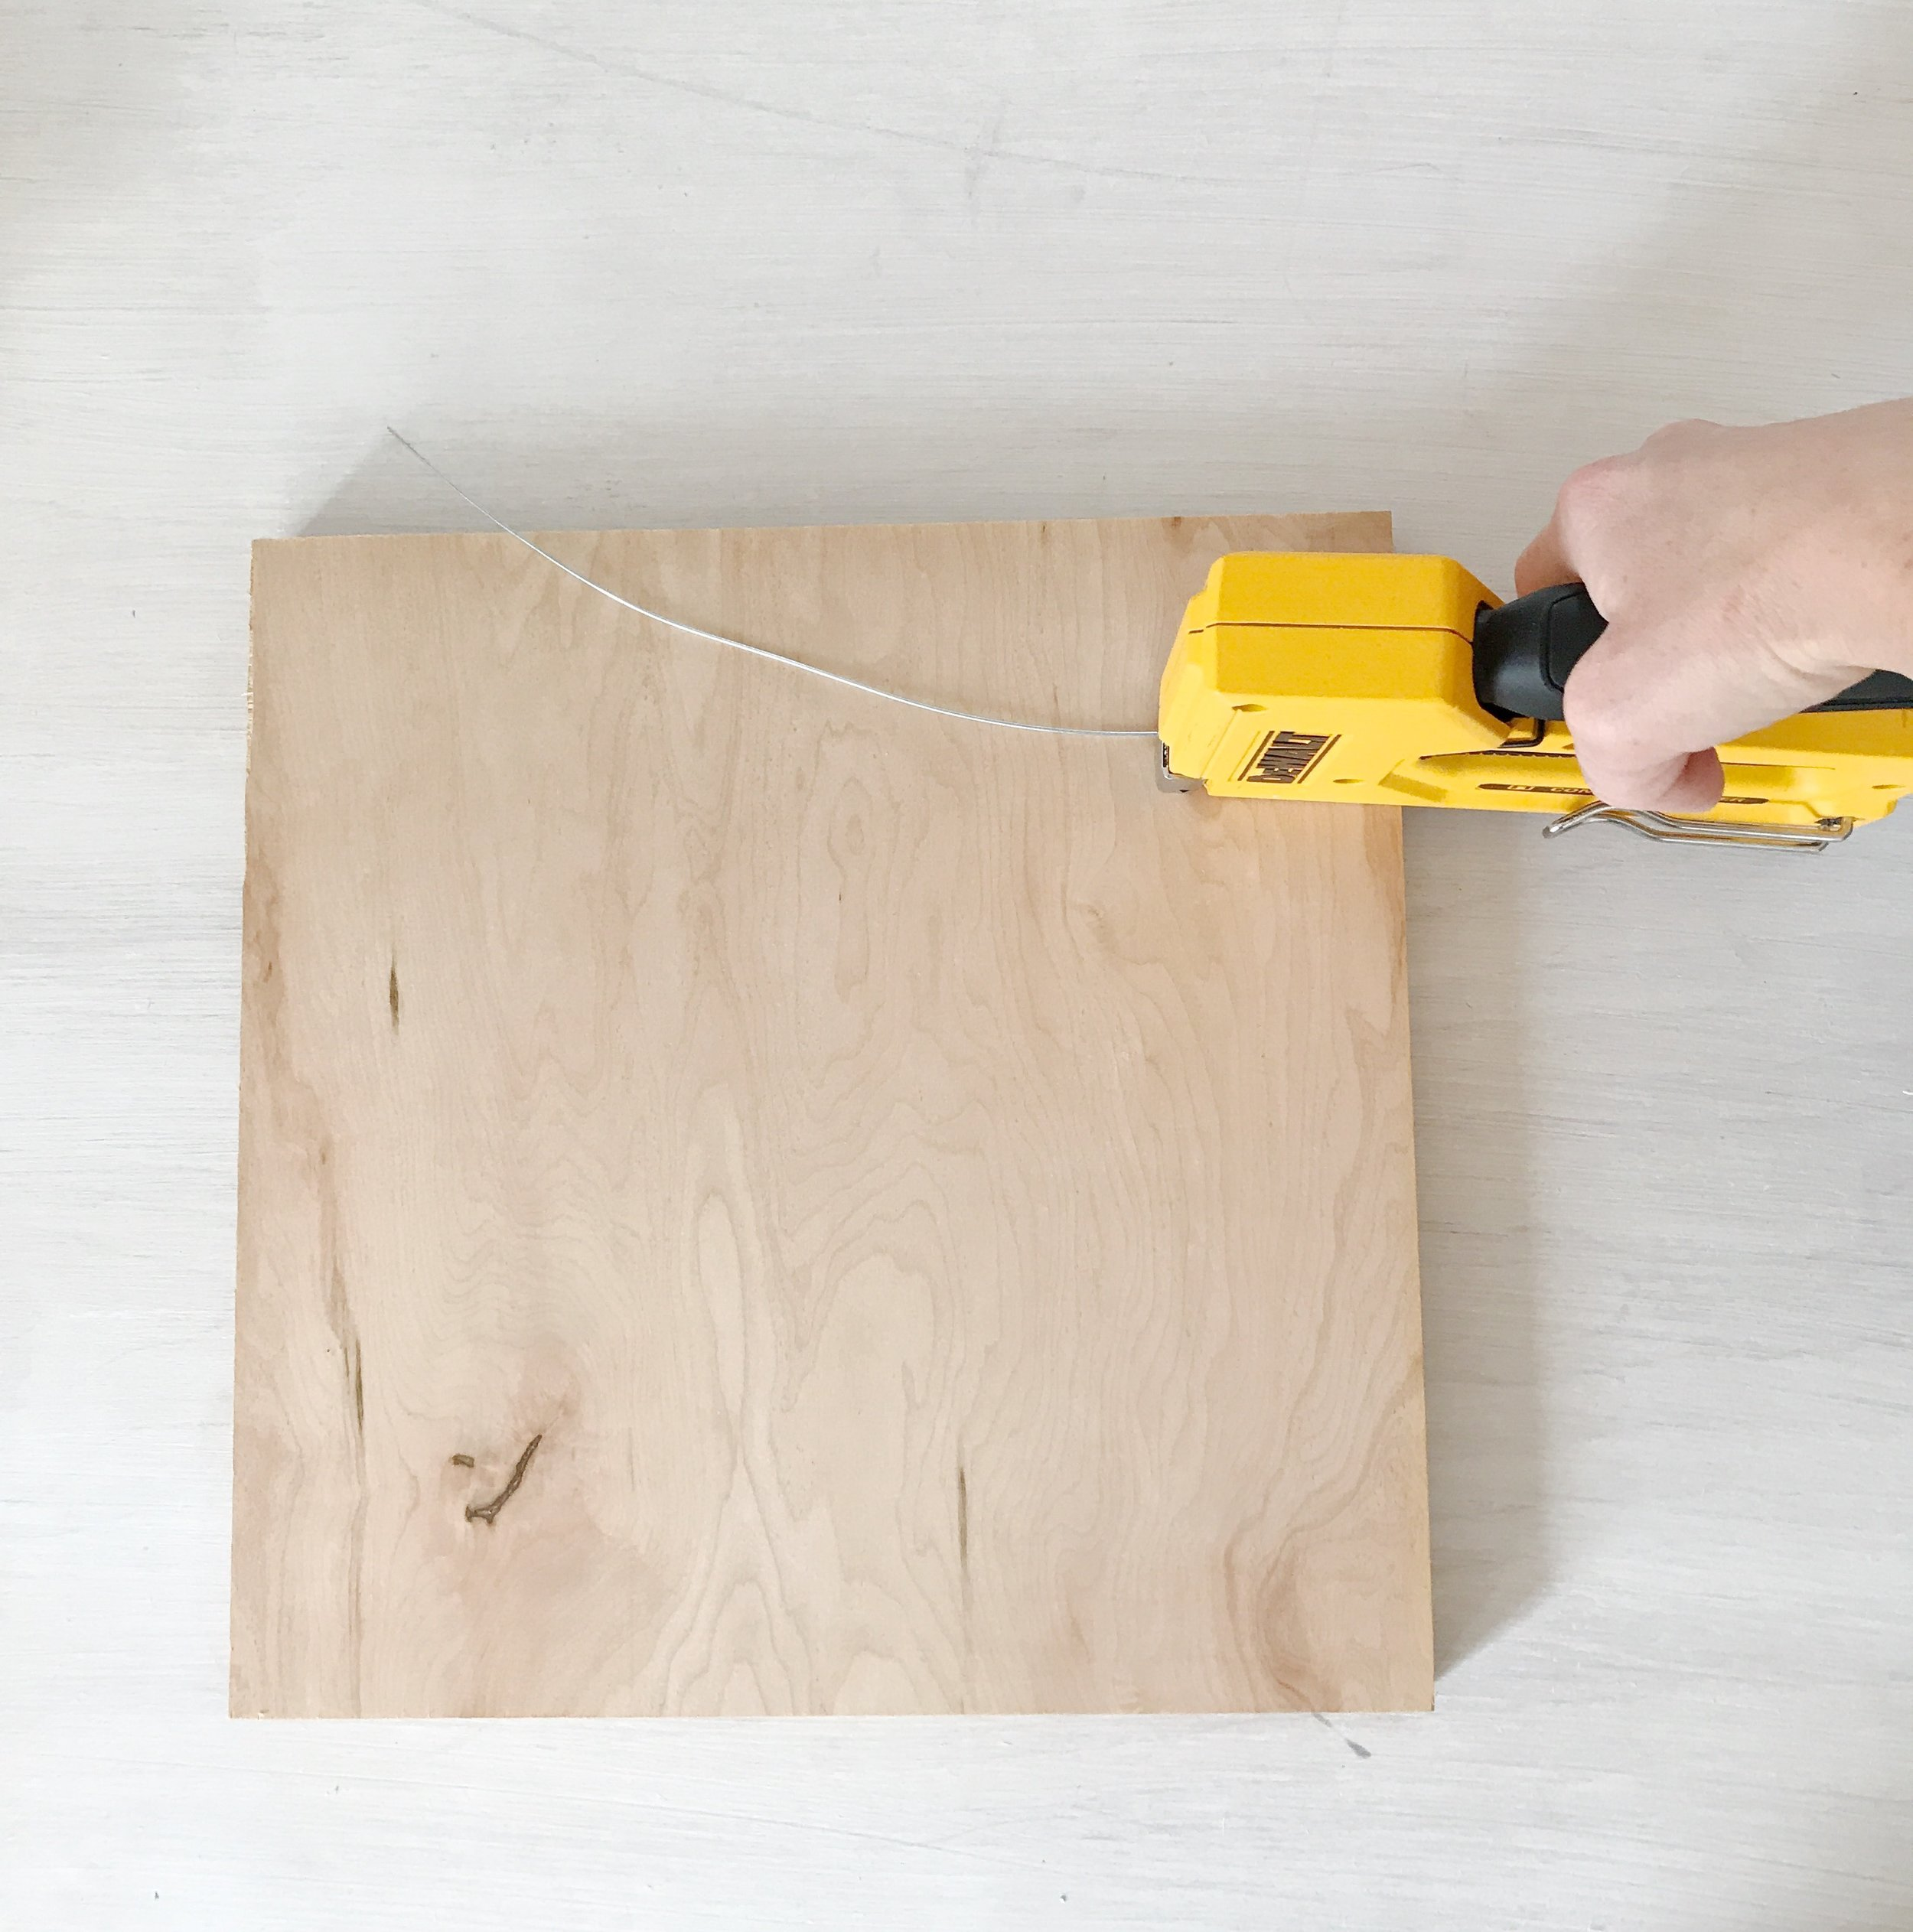 Step 7: Staple wire - Once you have your piece of wire cut for hanging, simply staple it in place on the back of your wooden board.